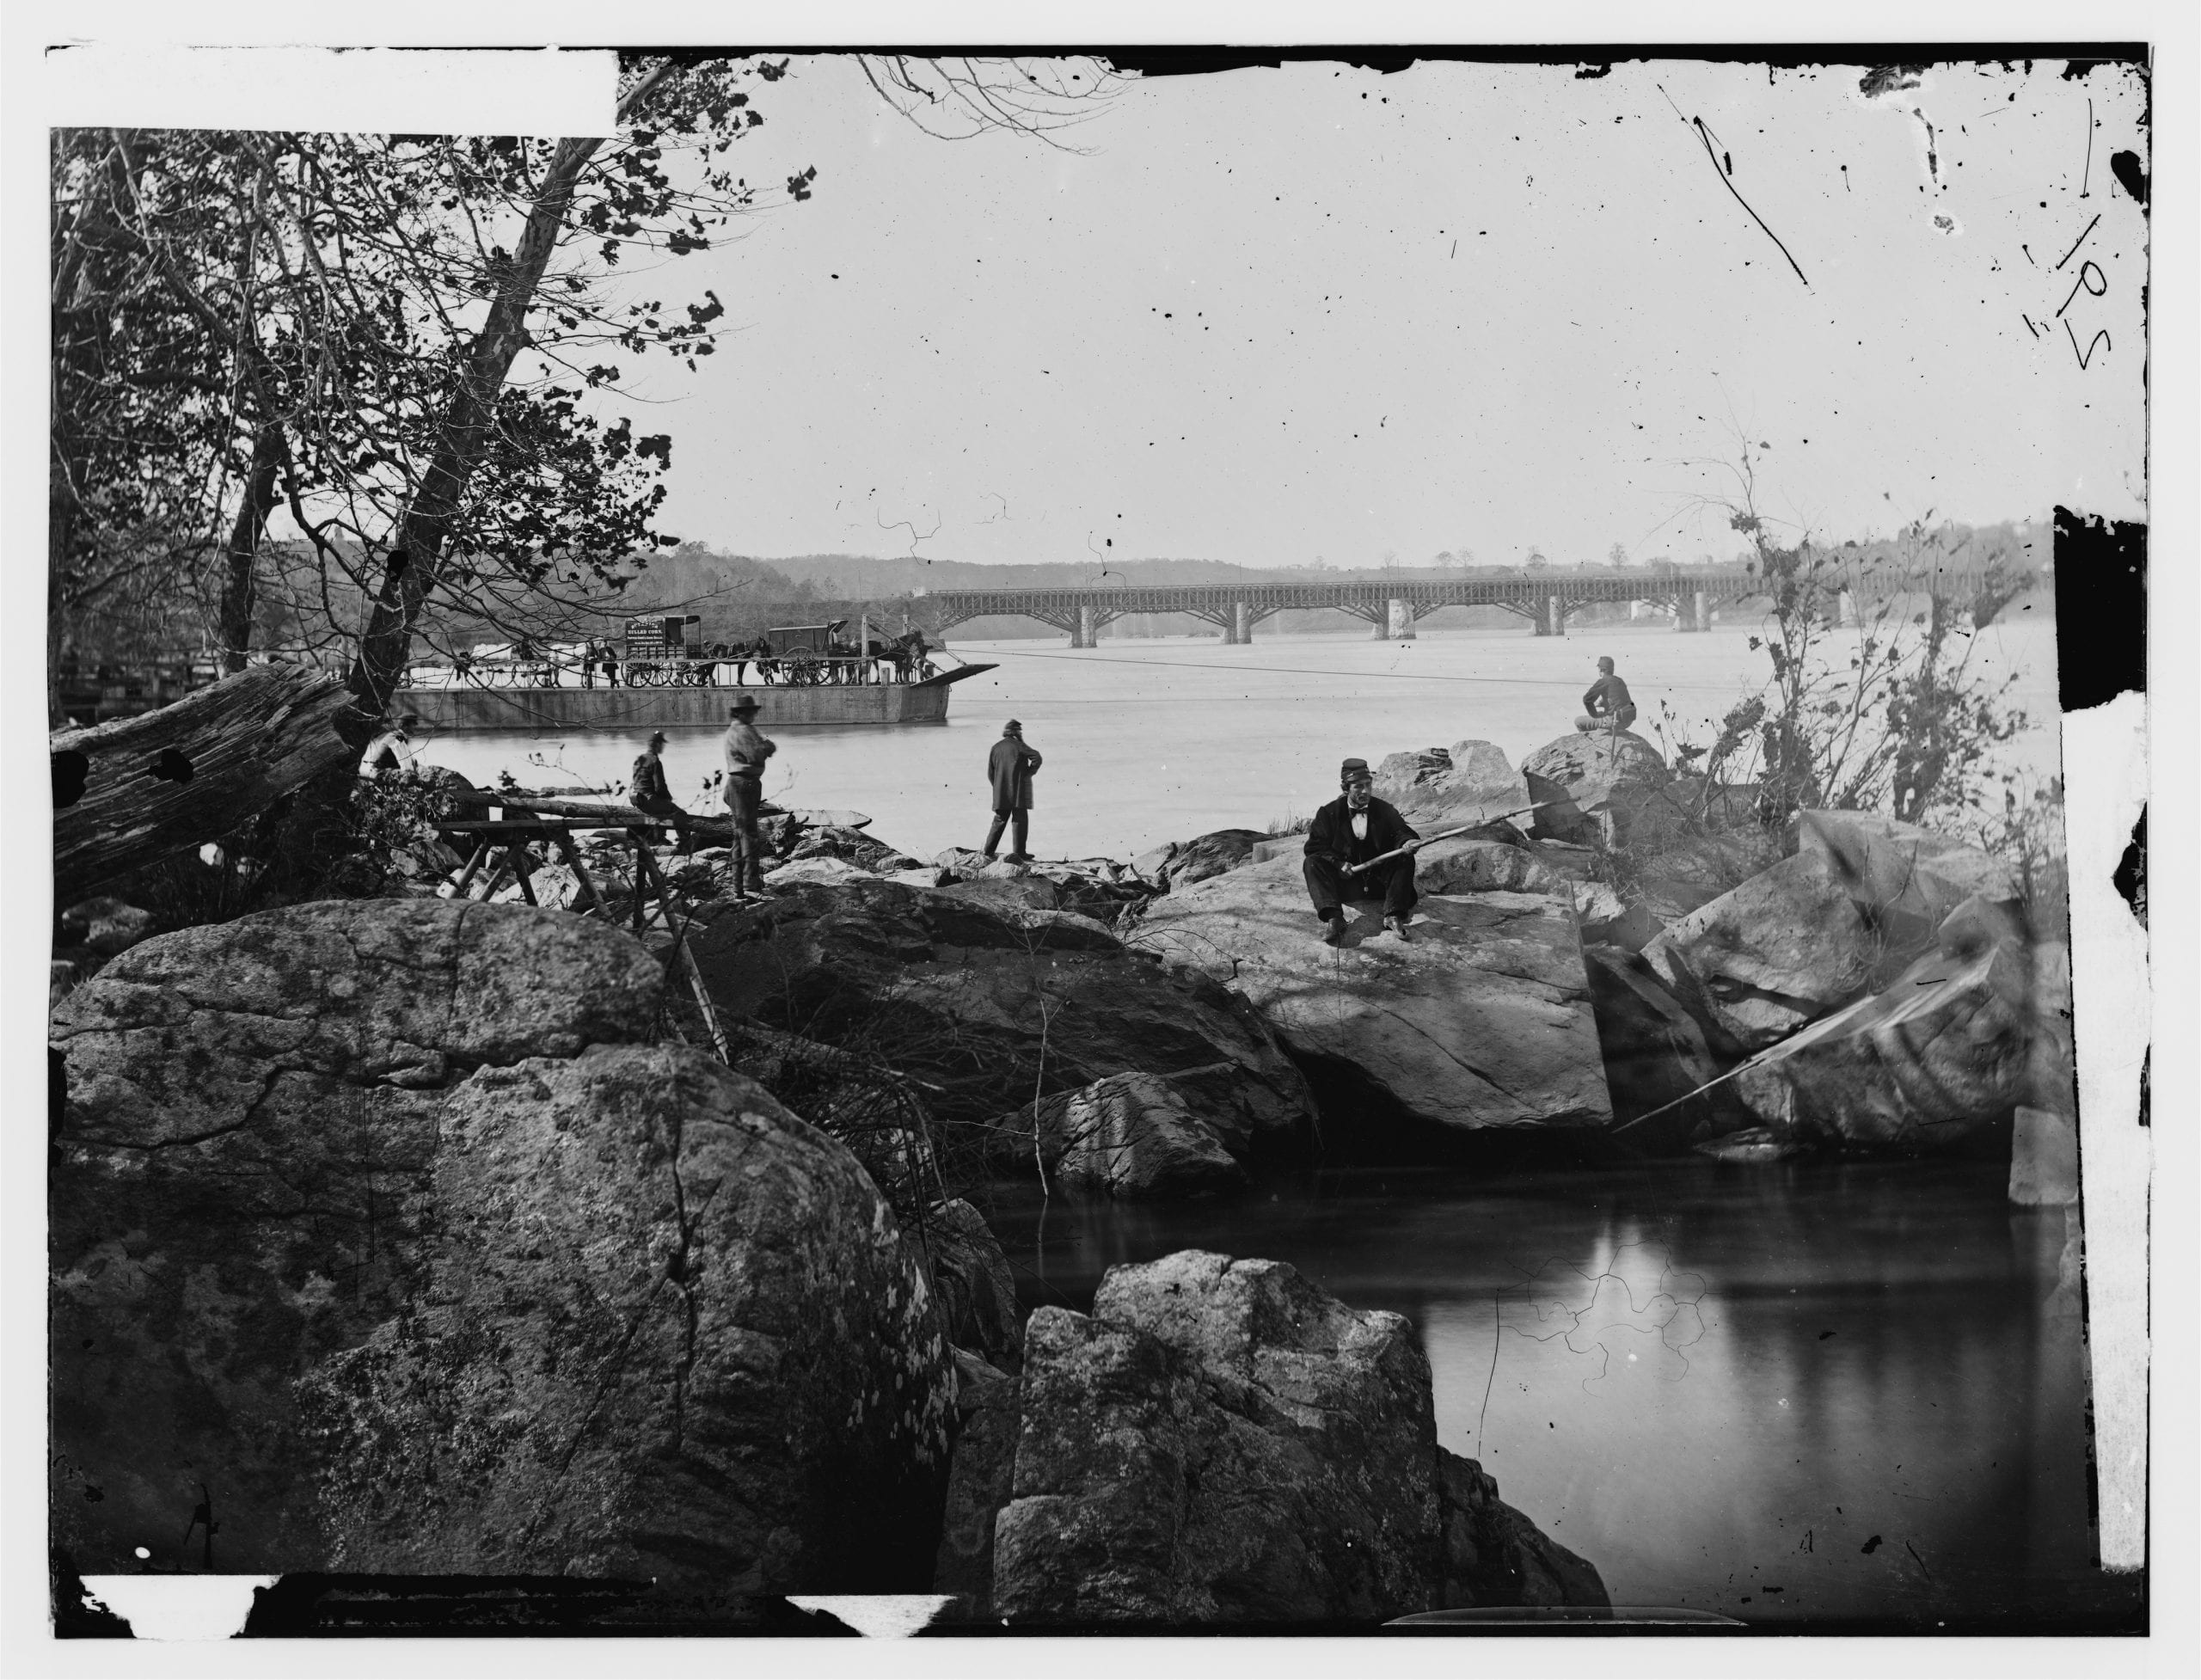 Washington, D.C. Georgetown ferry-boat carrying wagons, and Aqueduct Bridge beyond, from rocks on Mason's Island (Library of Congress)